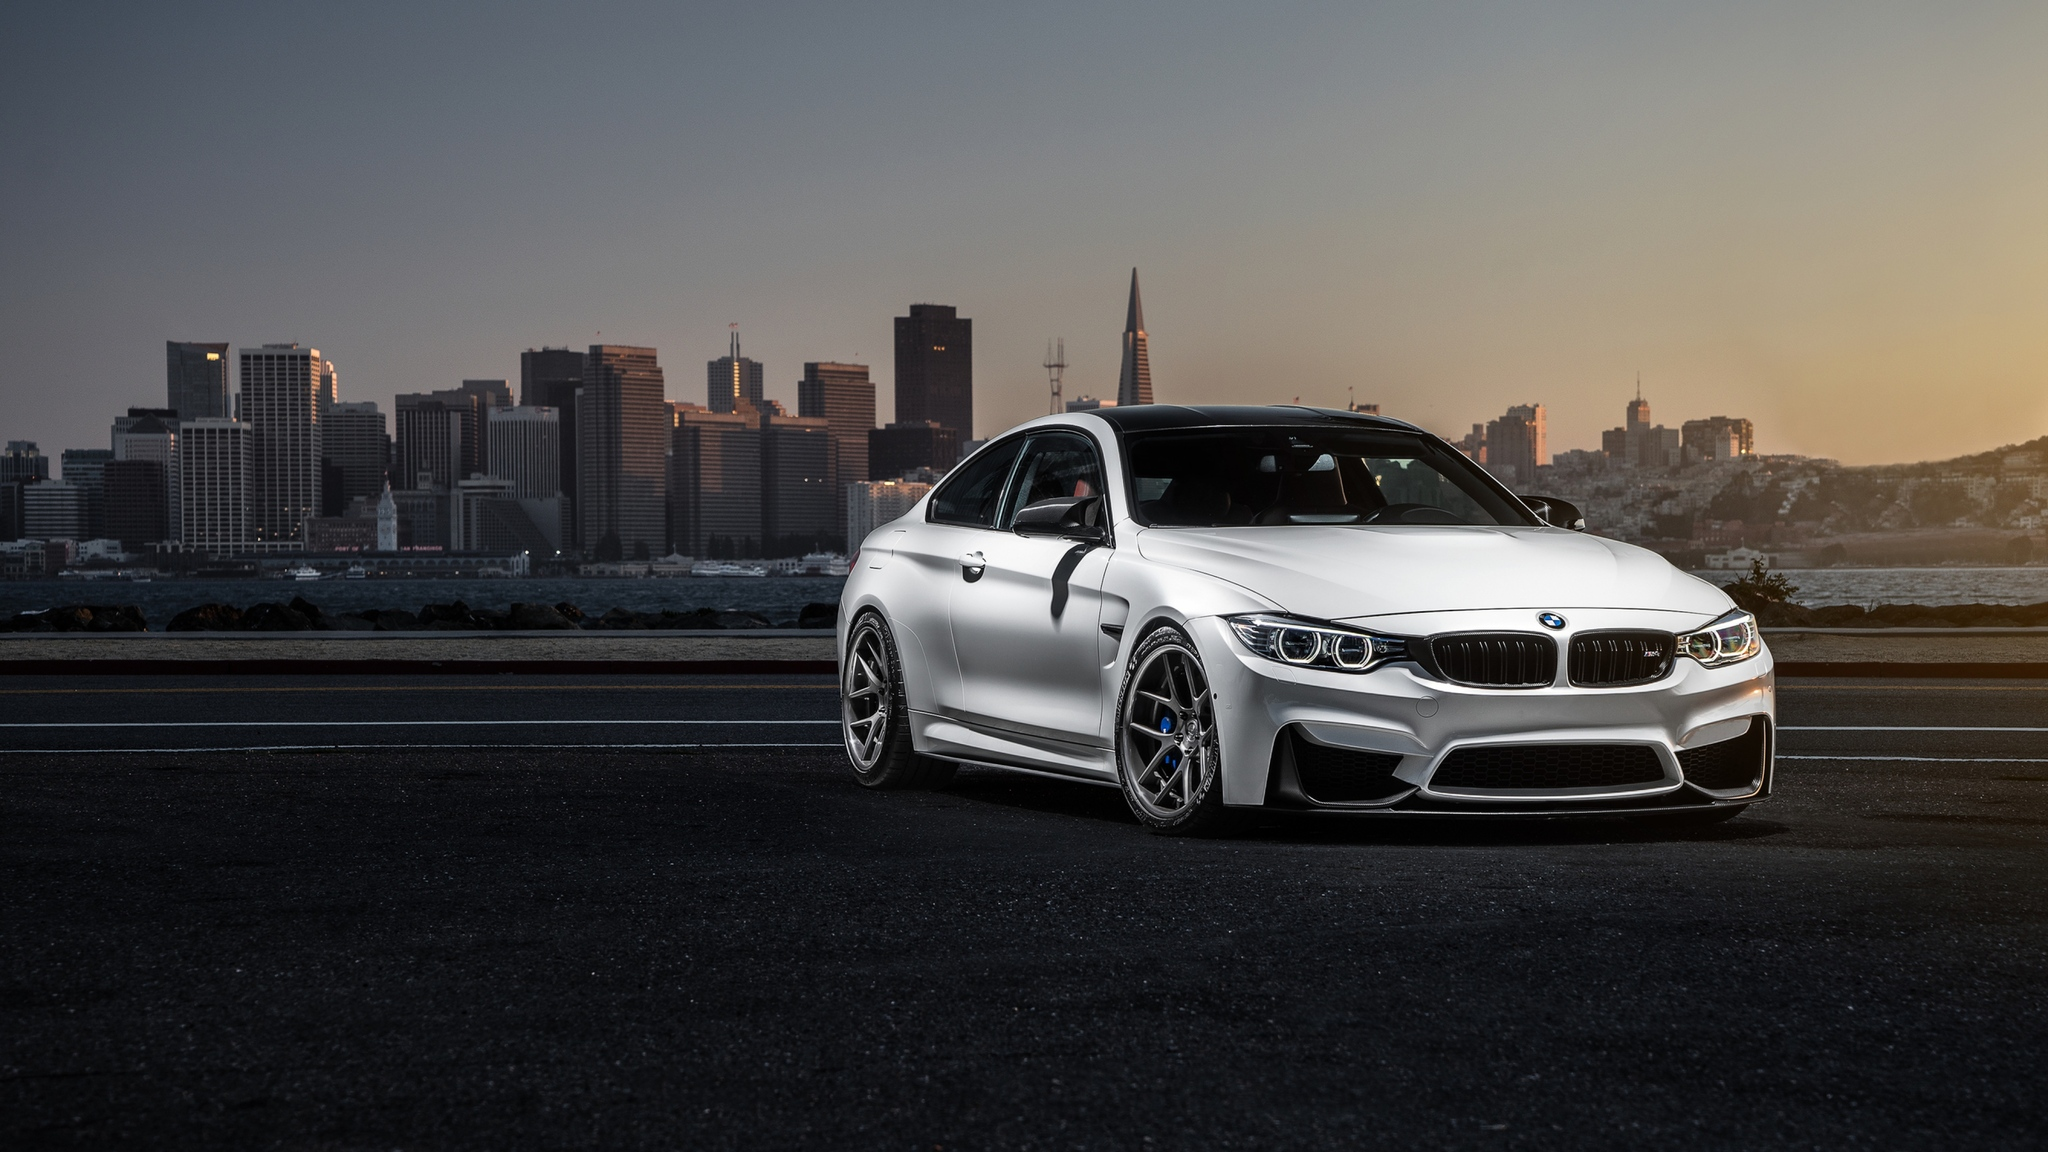 2048x1152 bmw m4 2048x1152 resolution hd 4k wallpapers. Black Bedroom Furniture Sets. Home Design Ideas